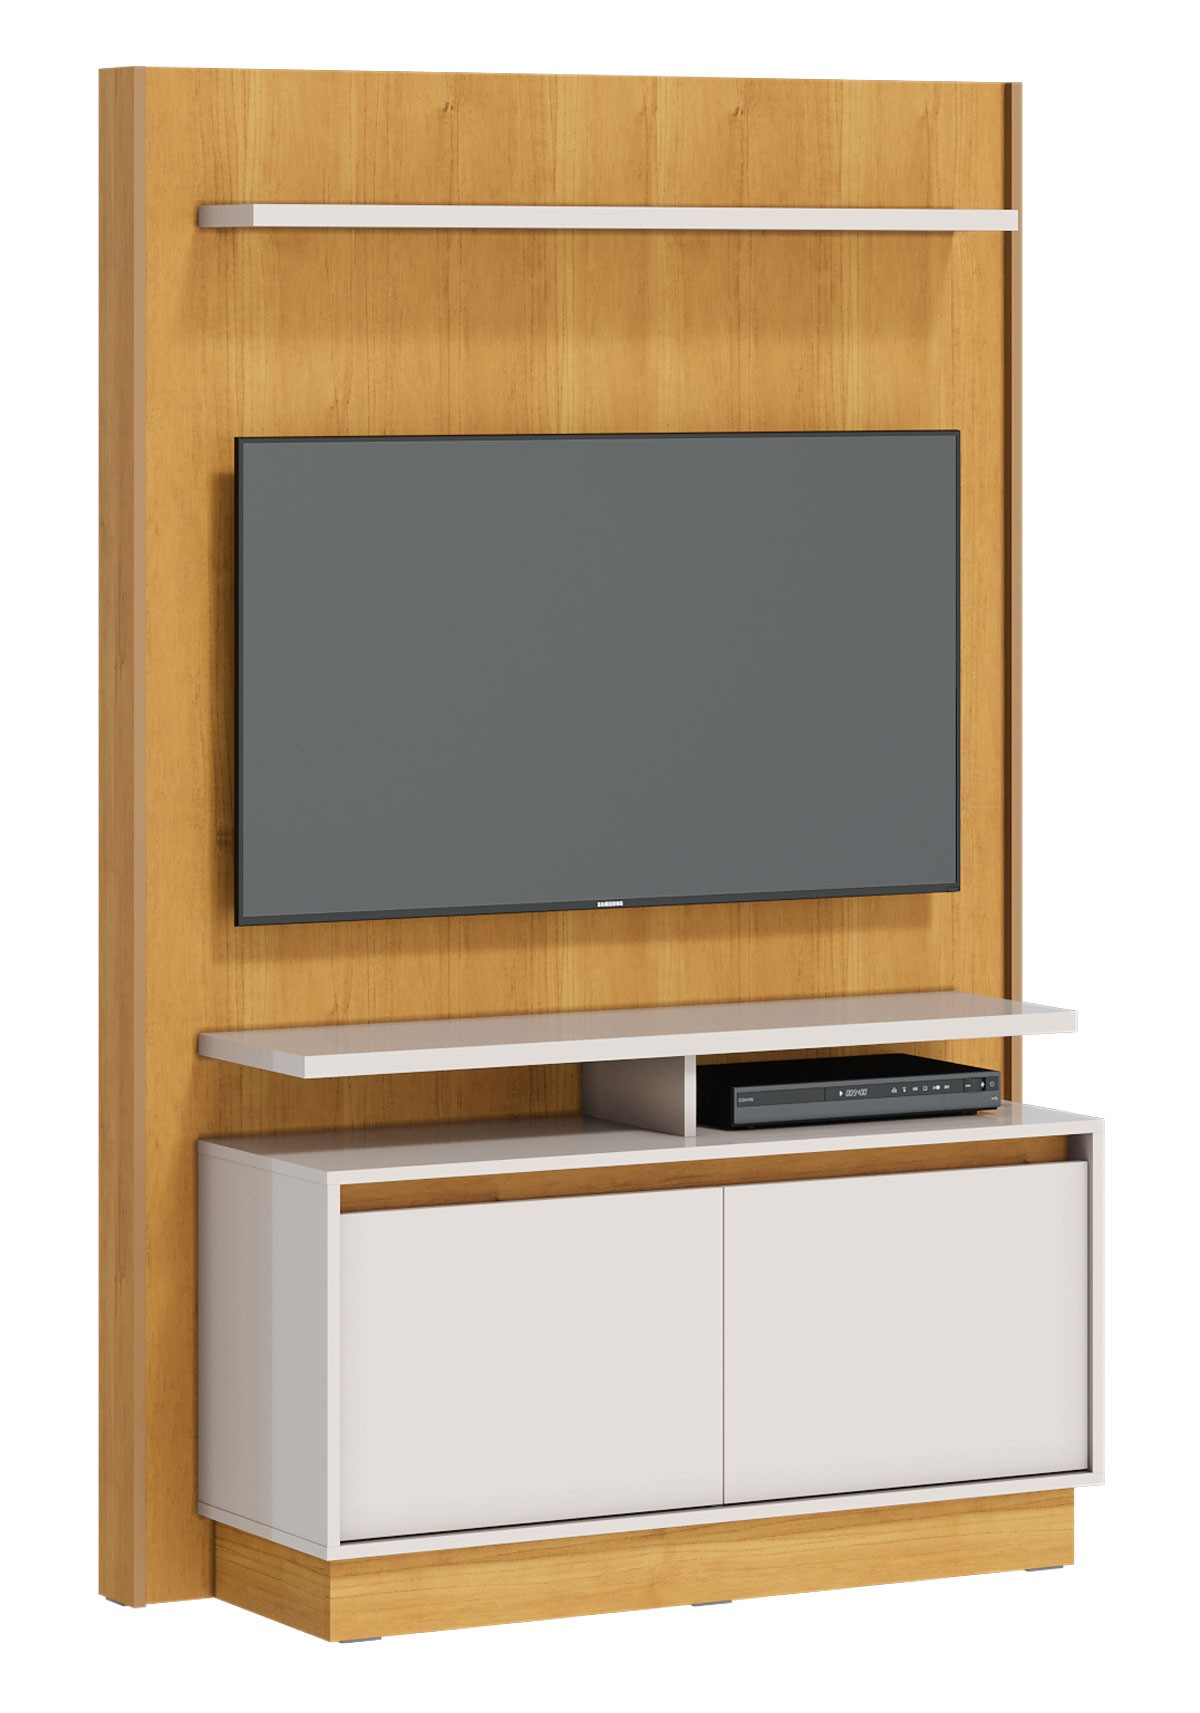 Home Theater Fit Nature com Off White - Imcal Móveis